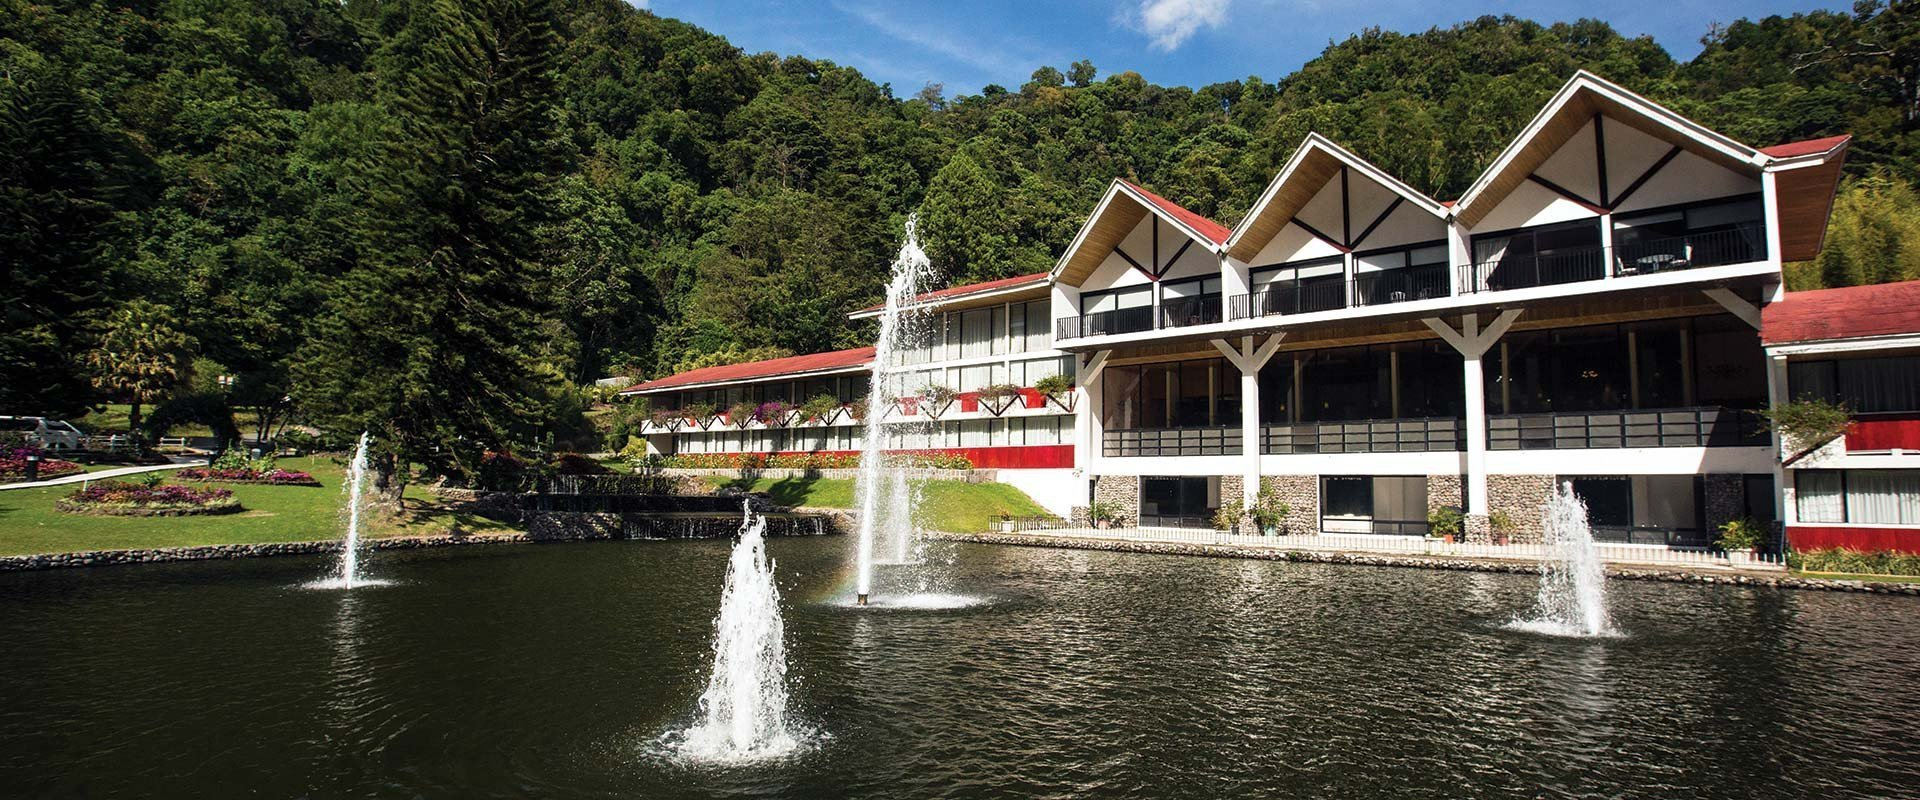 The gateway to a world of natural wonders bambito by faranda boutique hotel chiriqui